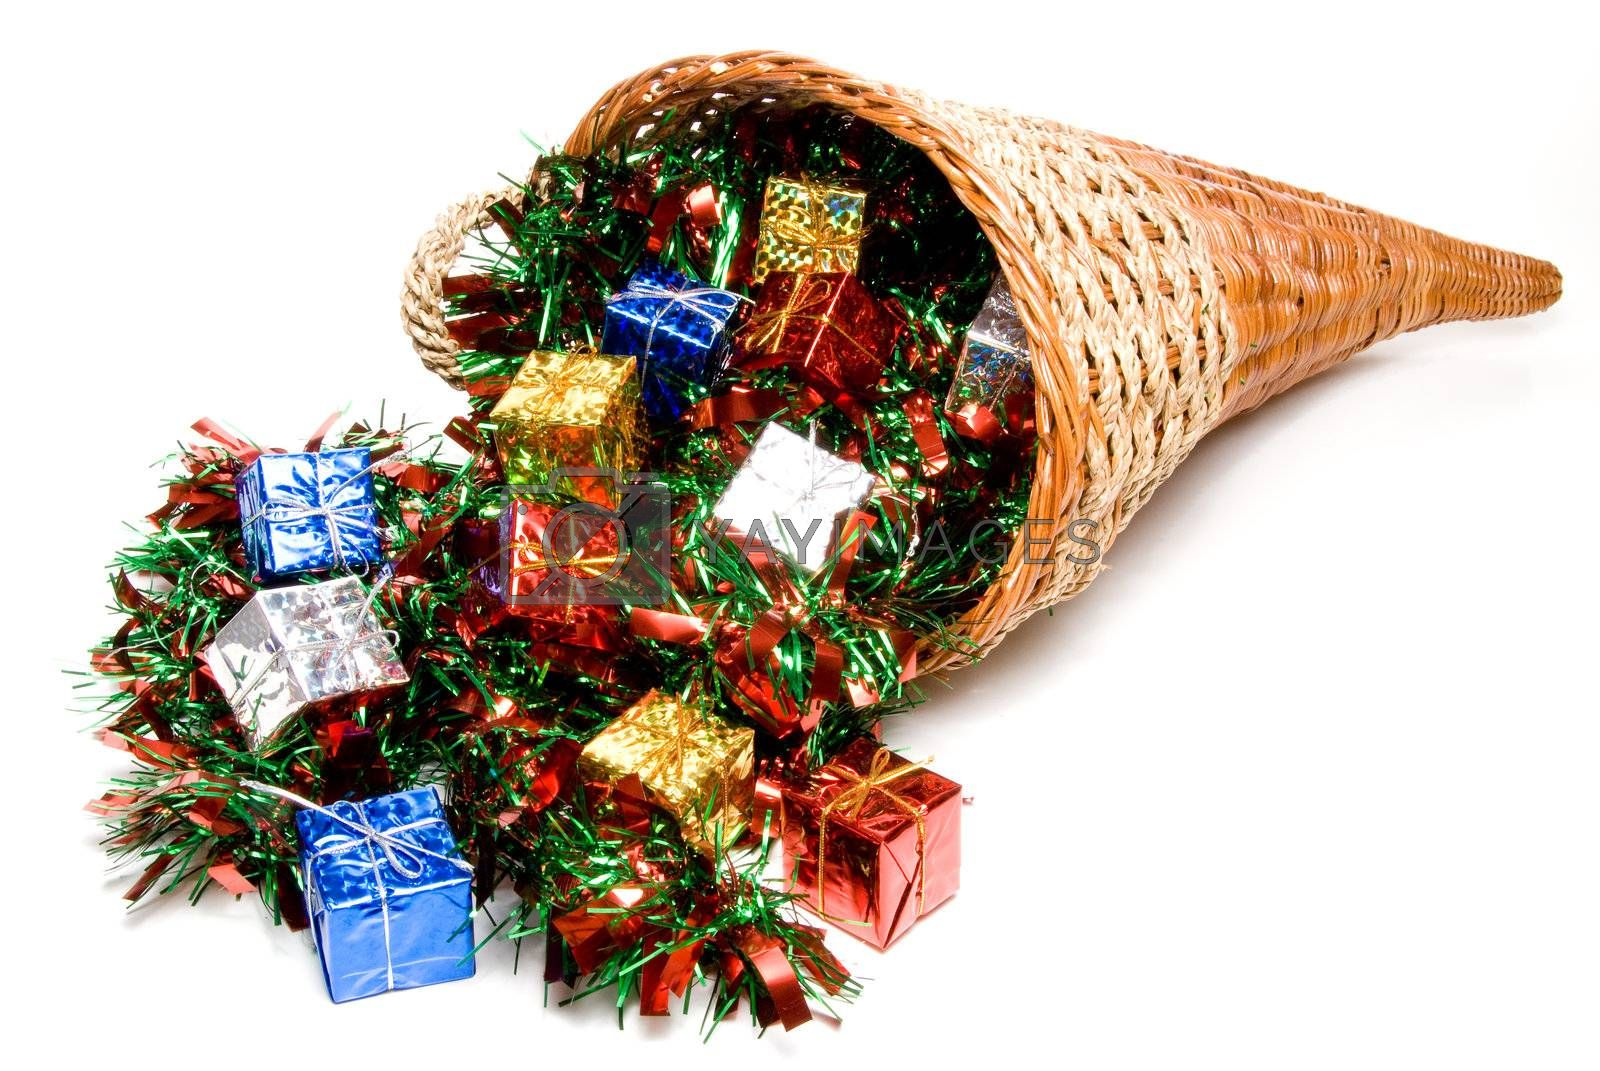 A cornucopia filled with holday Christmas presents.